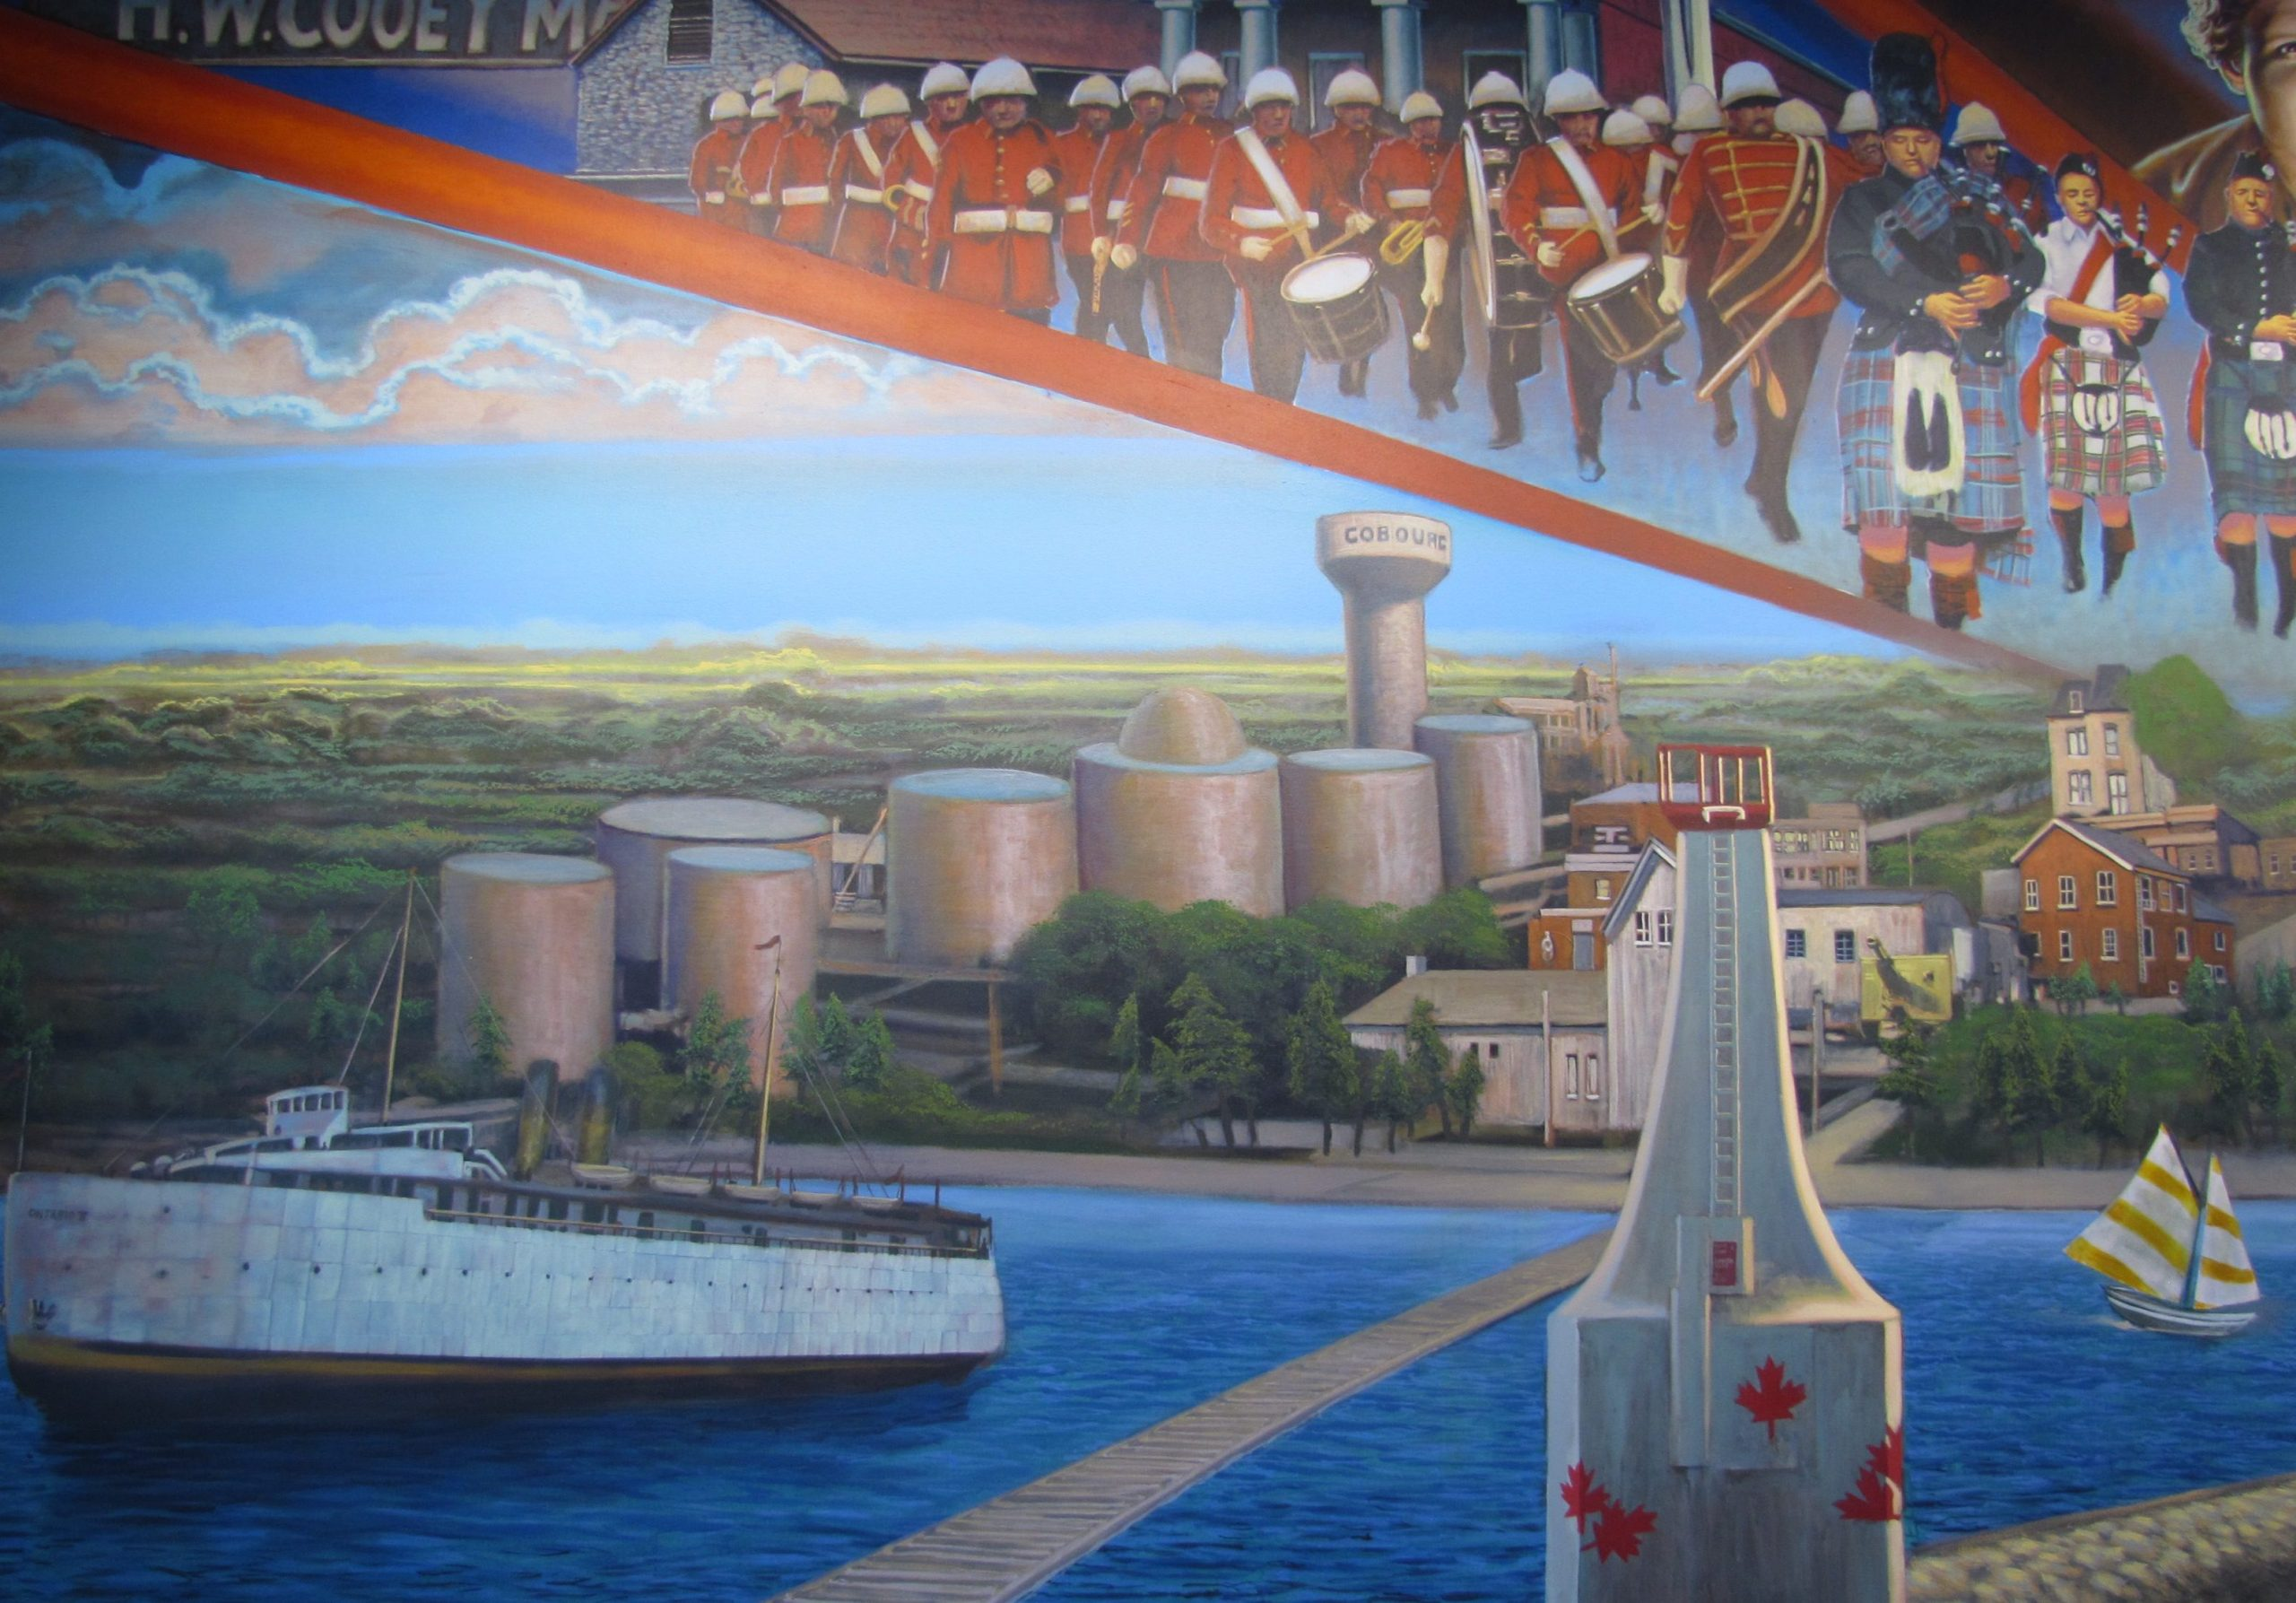 A colourful mural showing the current white Cobourg lighthouse to the right and a large white ferry to the left. On shore, in the distance to the left and centre, are seven large silver oil tanks and a water tower, and to the right beyond the lighthouse are a few businesses . Above them are depicted the red uniformed Cobourg Concert Band in marching formation and the Legion Bagpipe band in varied kilts.